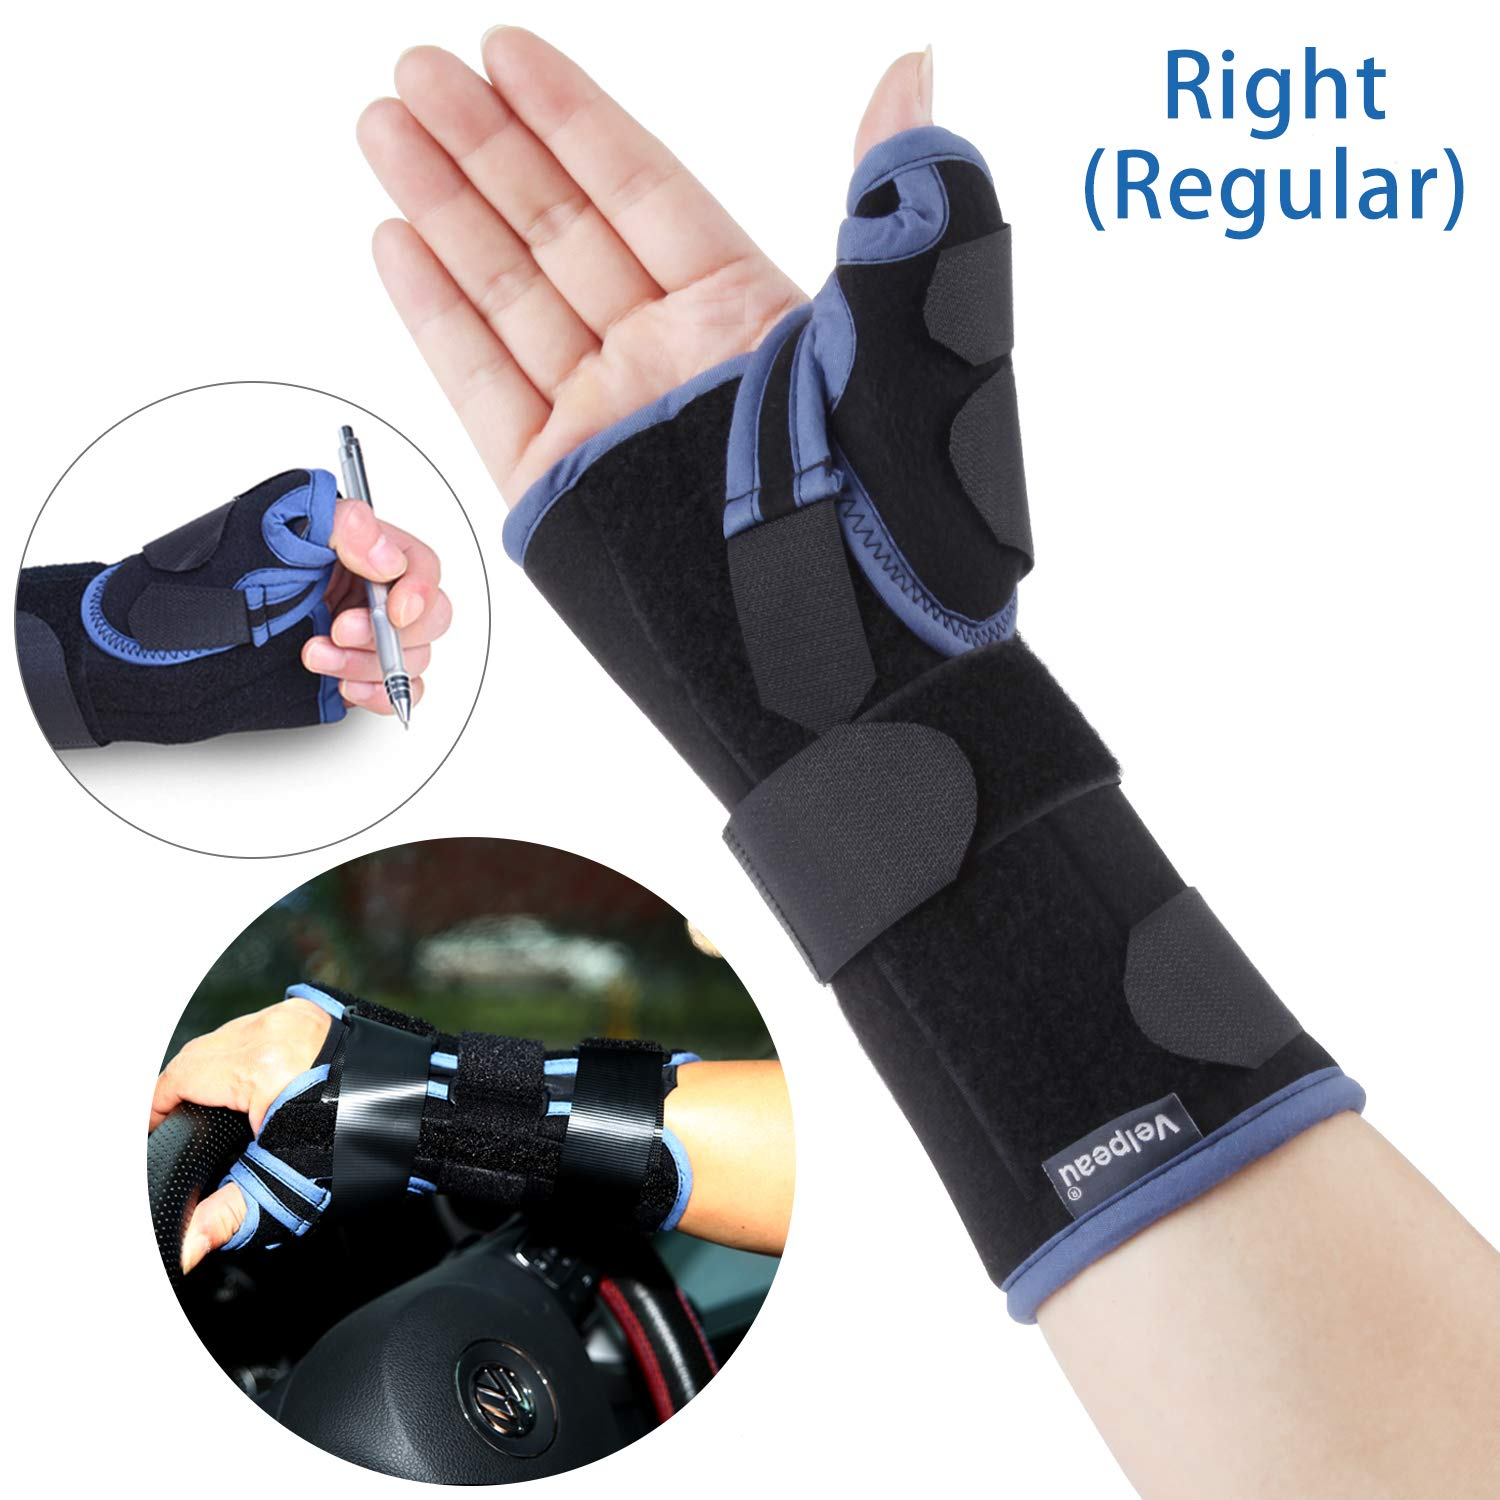 Velpeau Wrist Brace with Thumb Spica Splint Support for De Quervain's, Scaphoid Fracture, Sprain or Muscle Strain, Carpal Tunnel Relief, Injury Recovery for Men & Women (Regular, Right Hand - Medium)